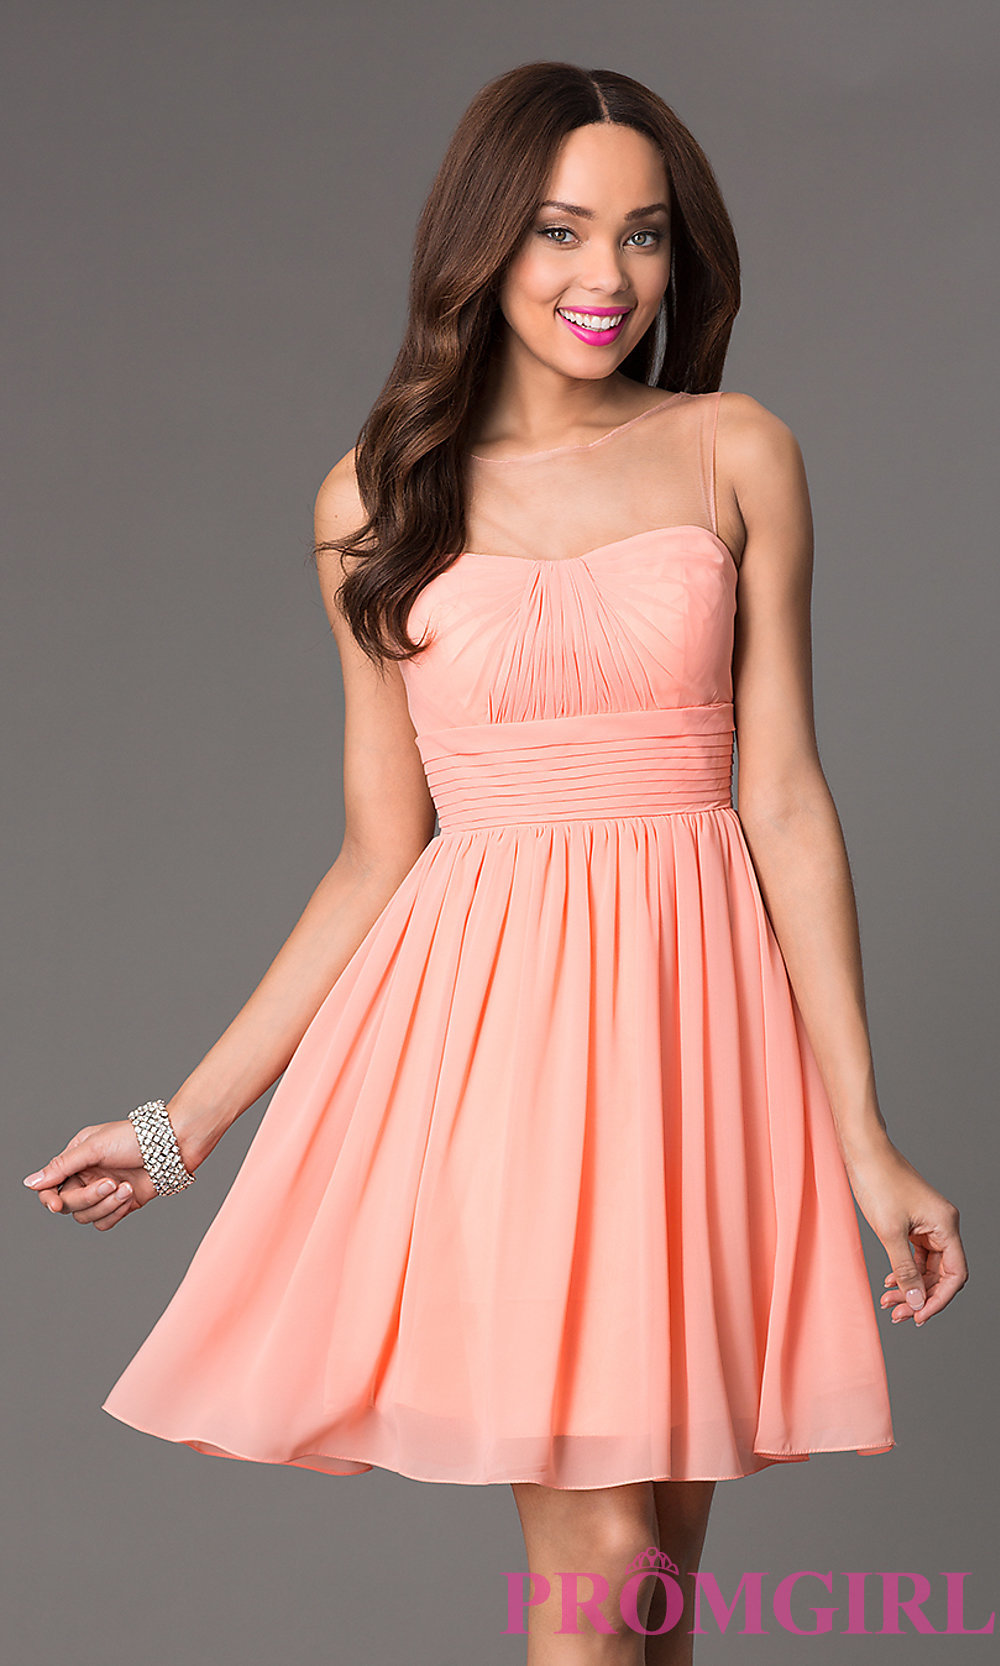 Illusion High Neck Short Party Dress Promgirl